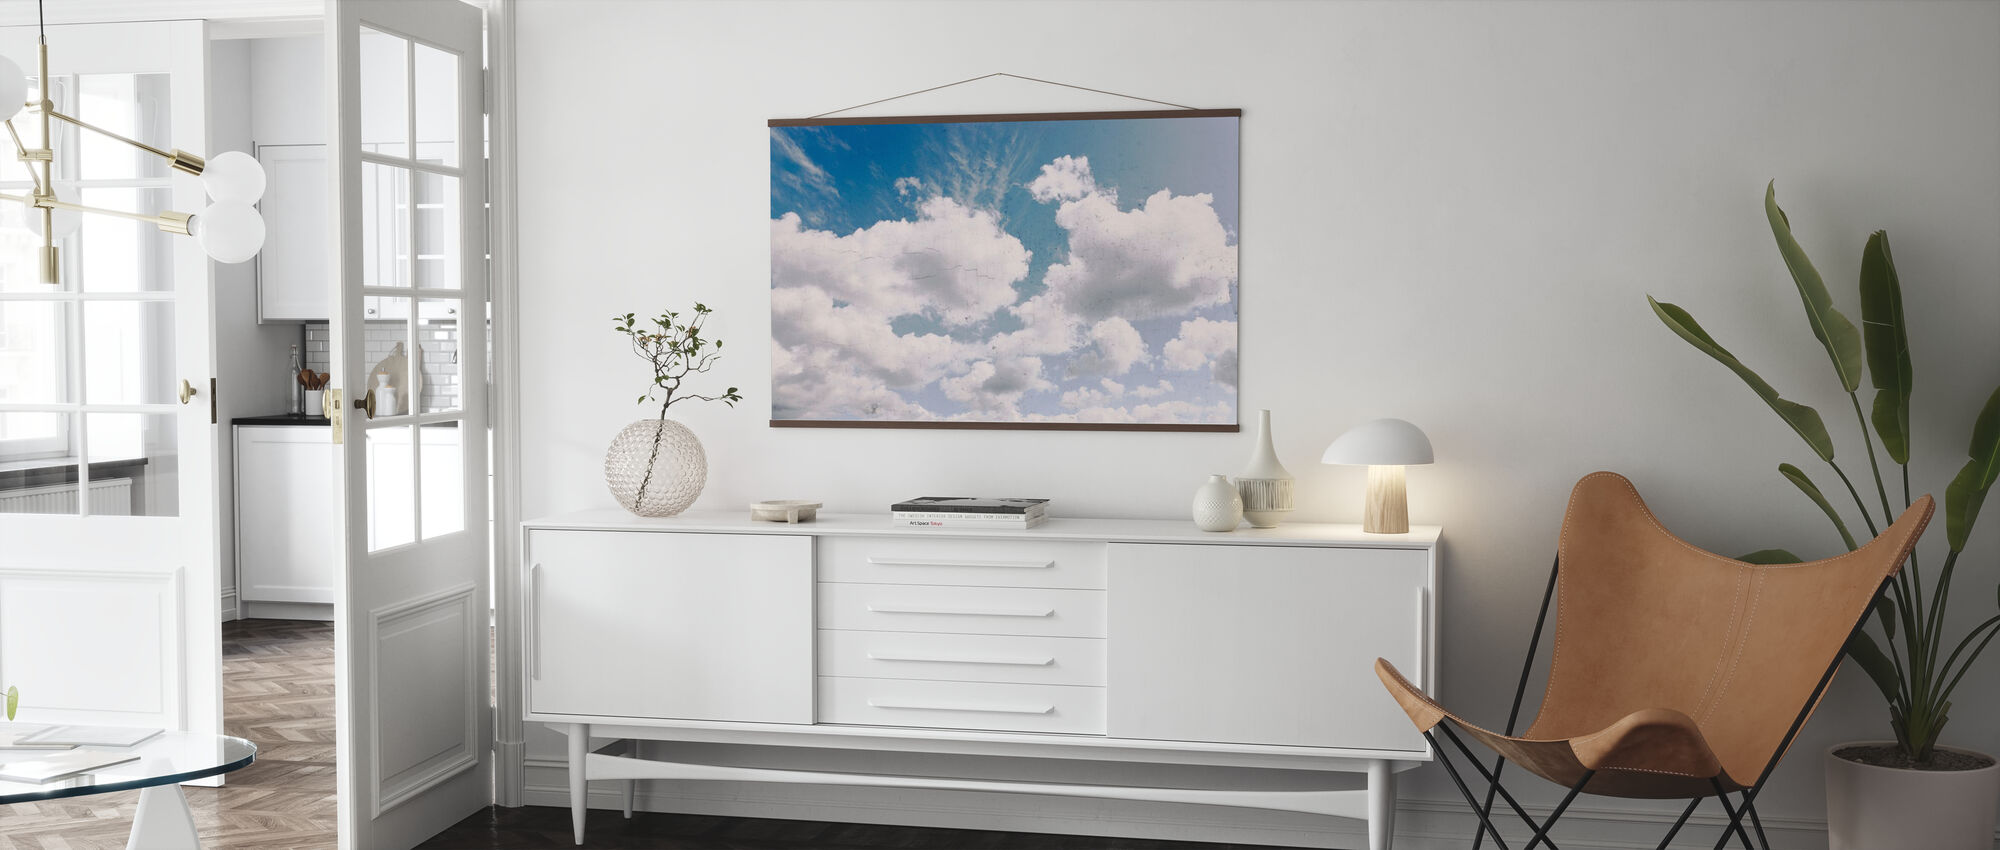 Dreamy Clouds - Poster - Living Room